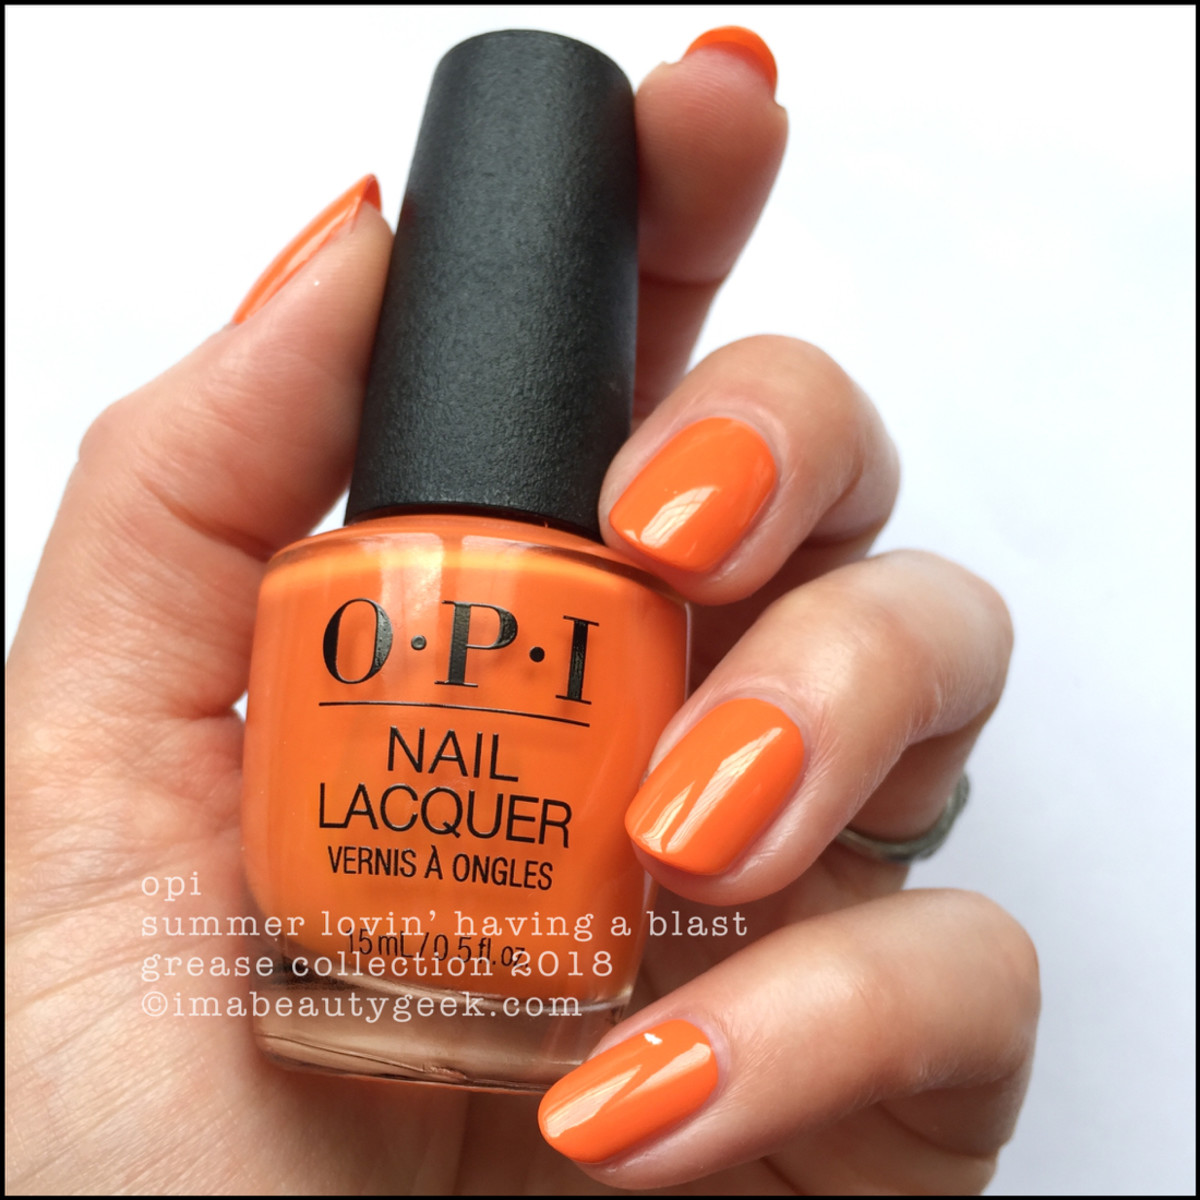 OPI Summer Lovin' Having a Blast - OPI Grease 2018